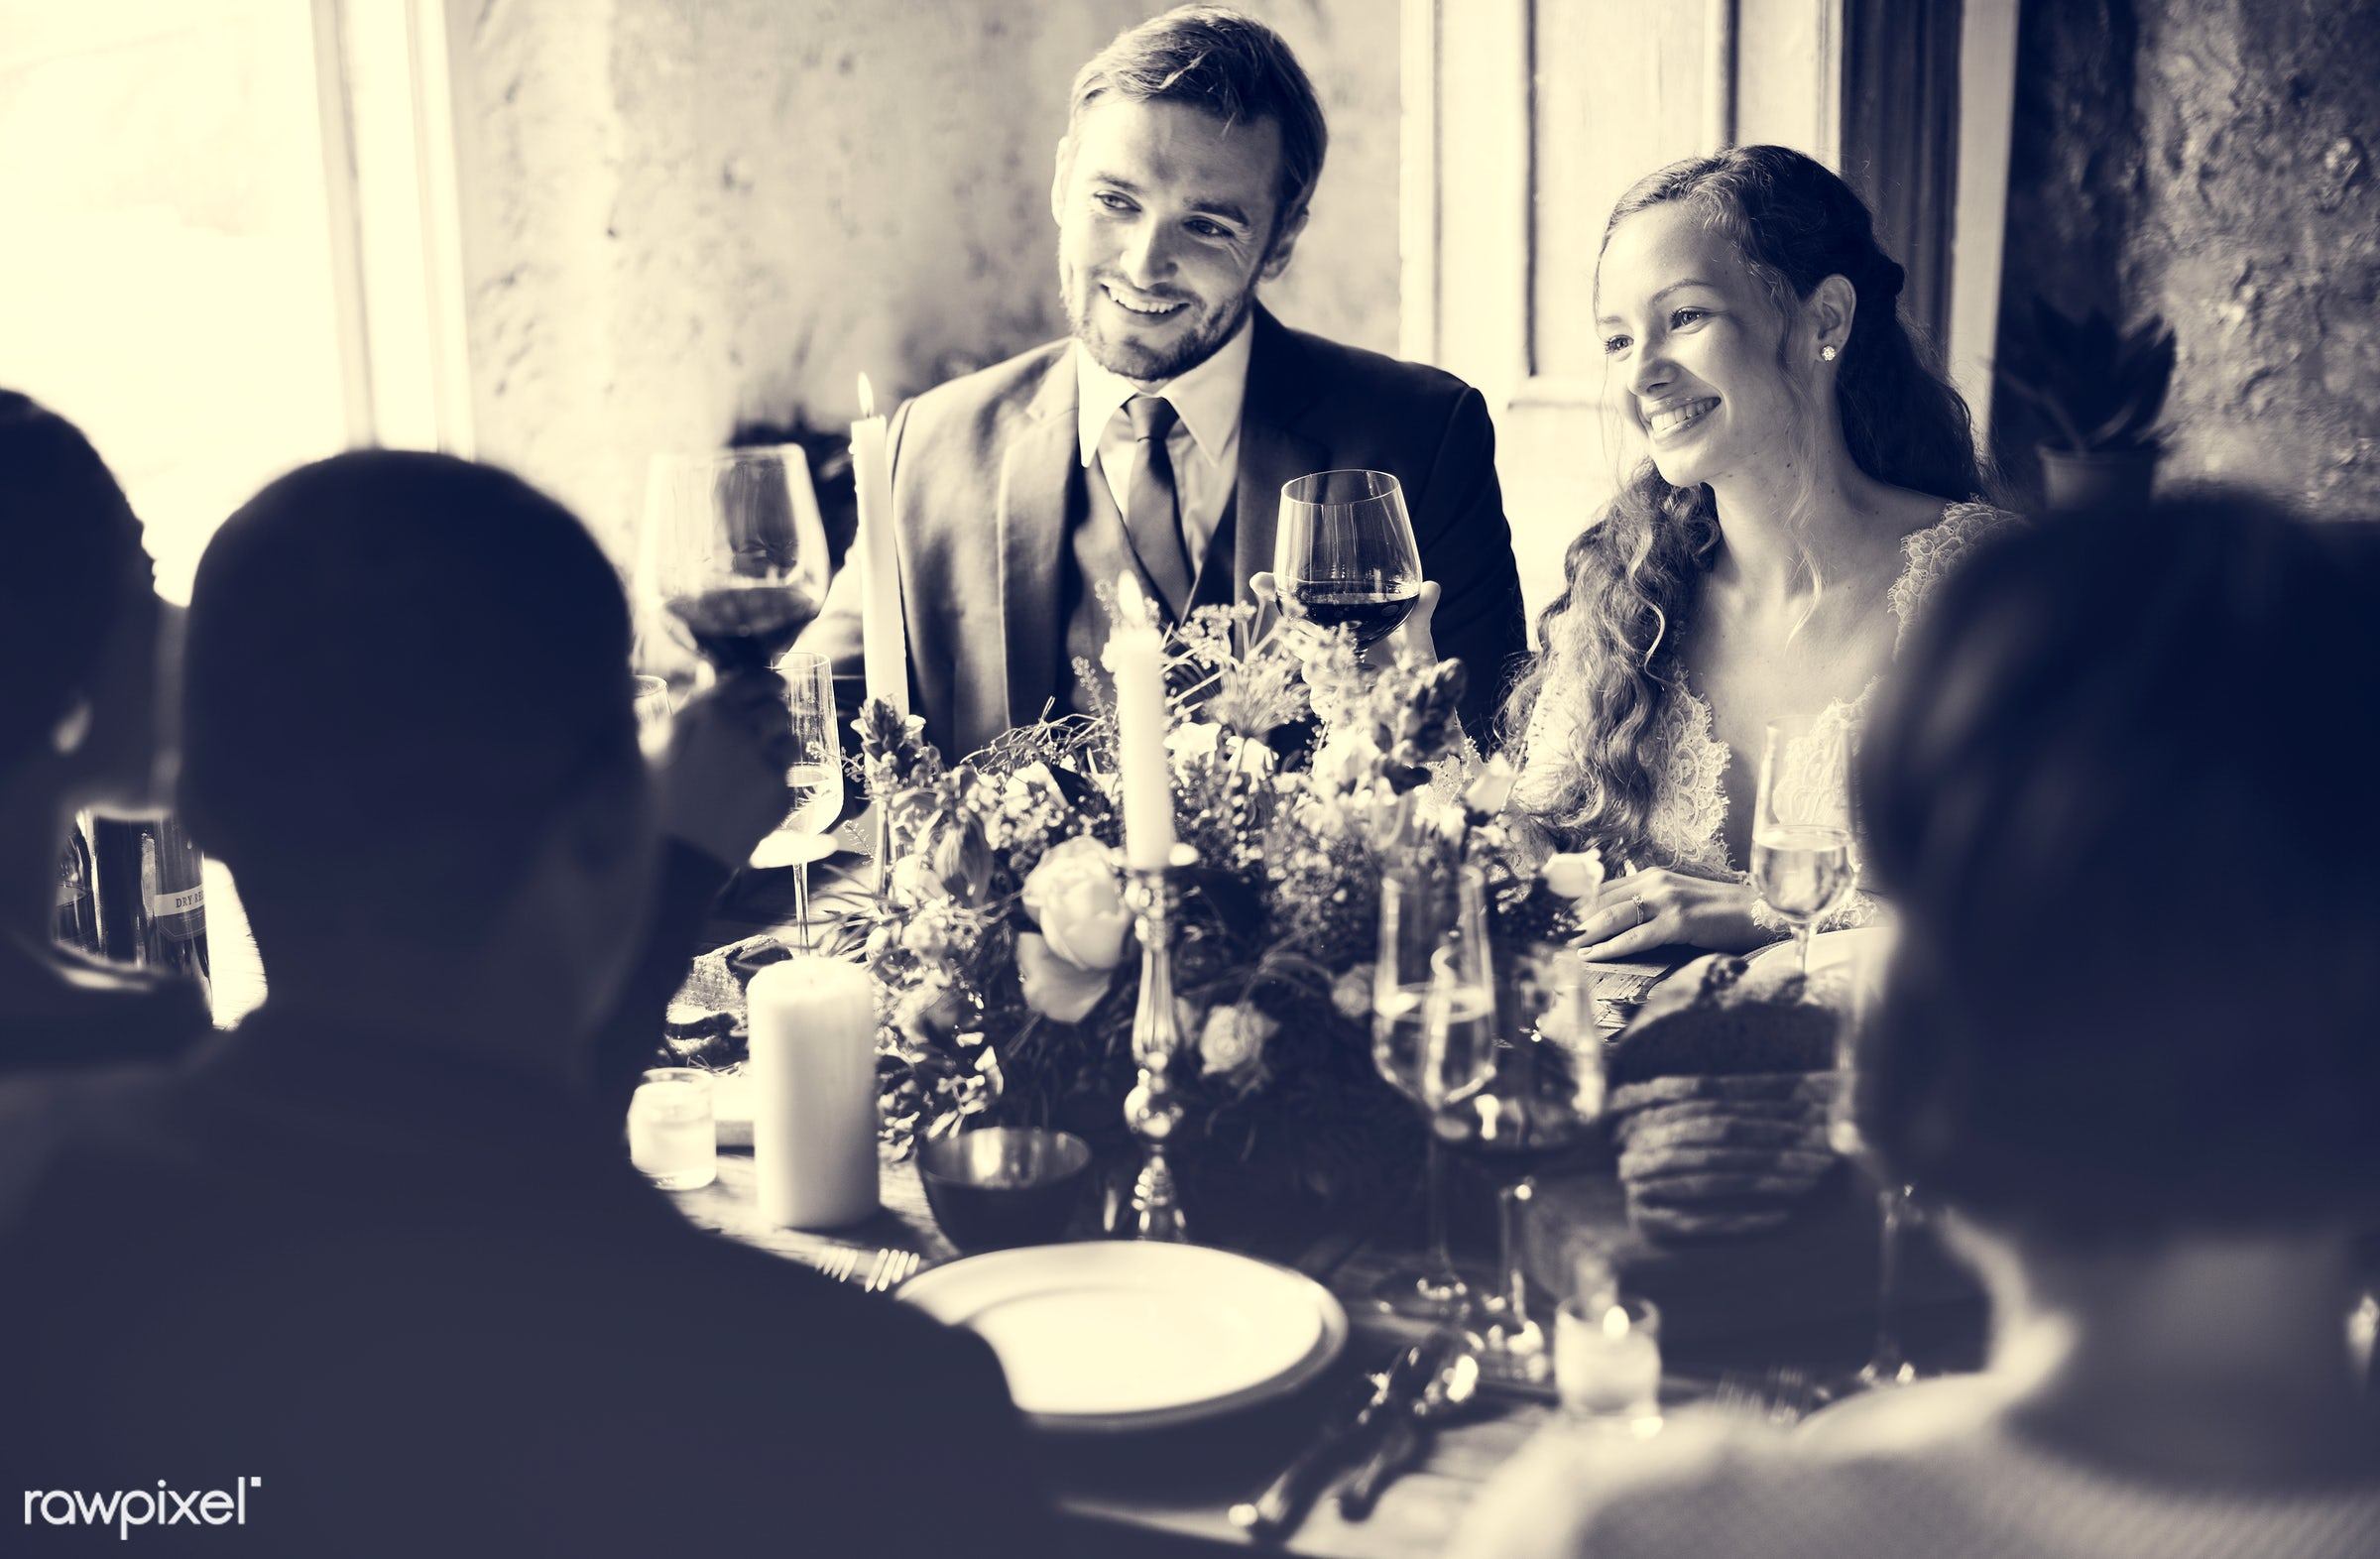 expression, person, holding, occasion, smitten, husband, restaurant, people, together, love, married, friends, family, event...